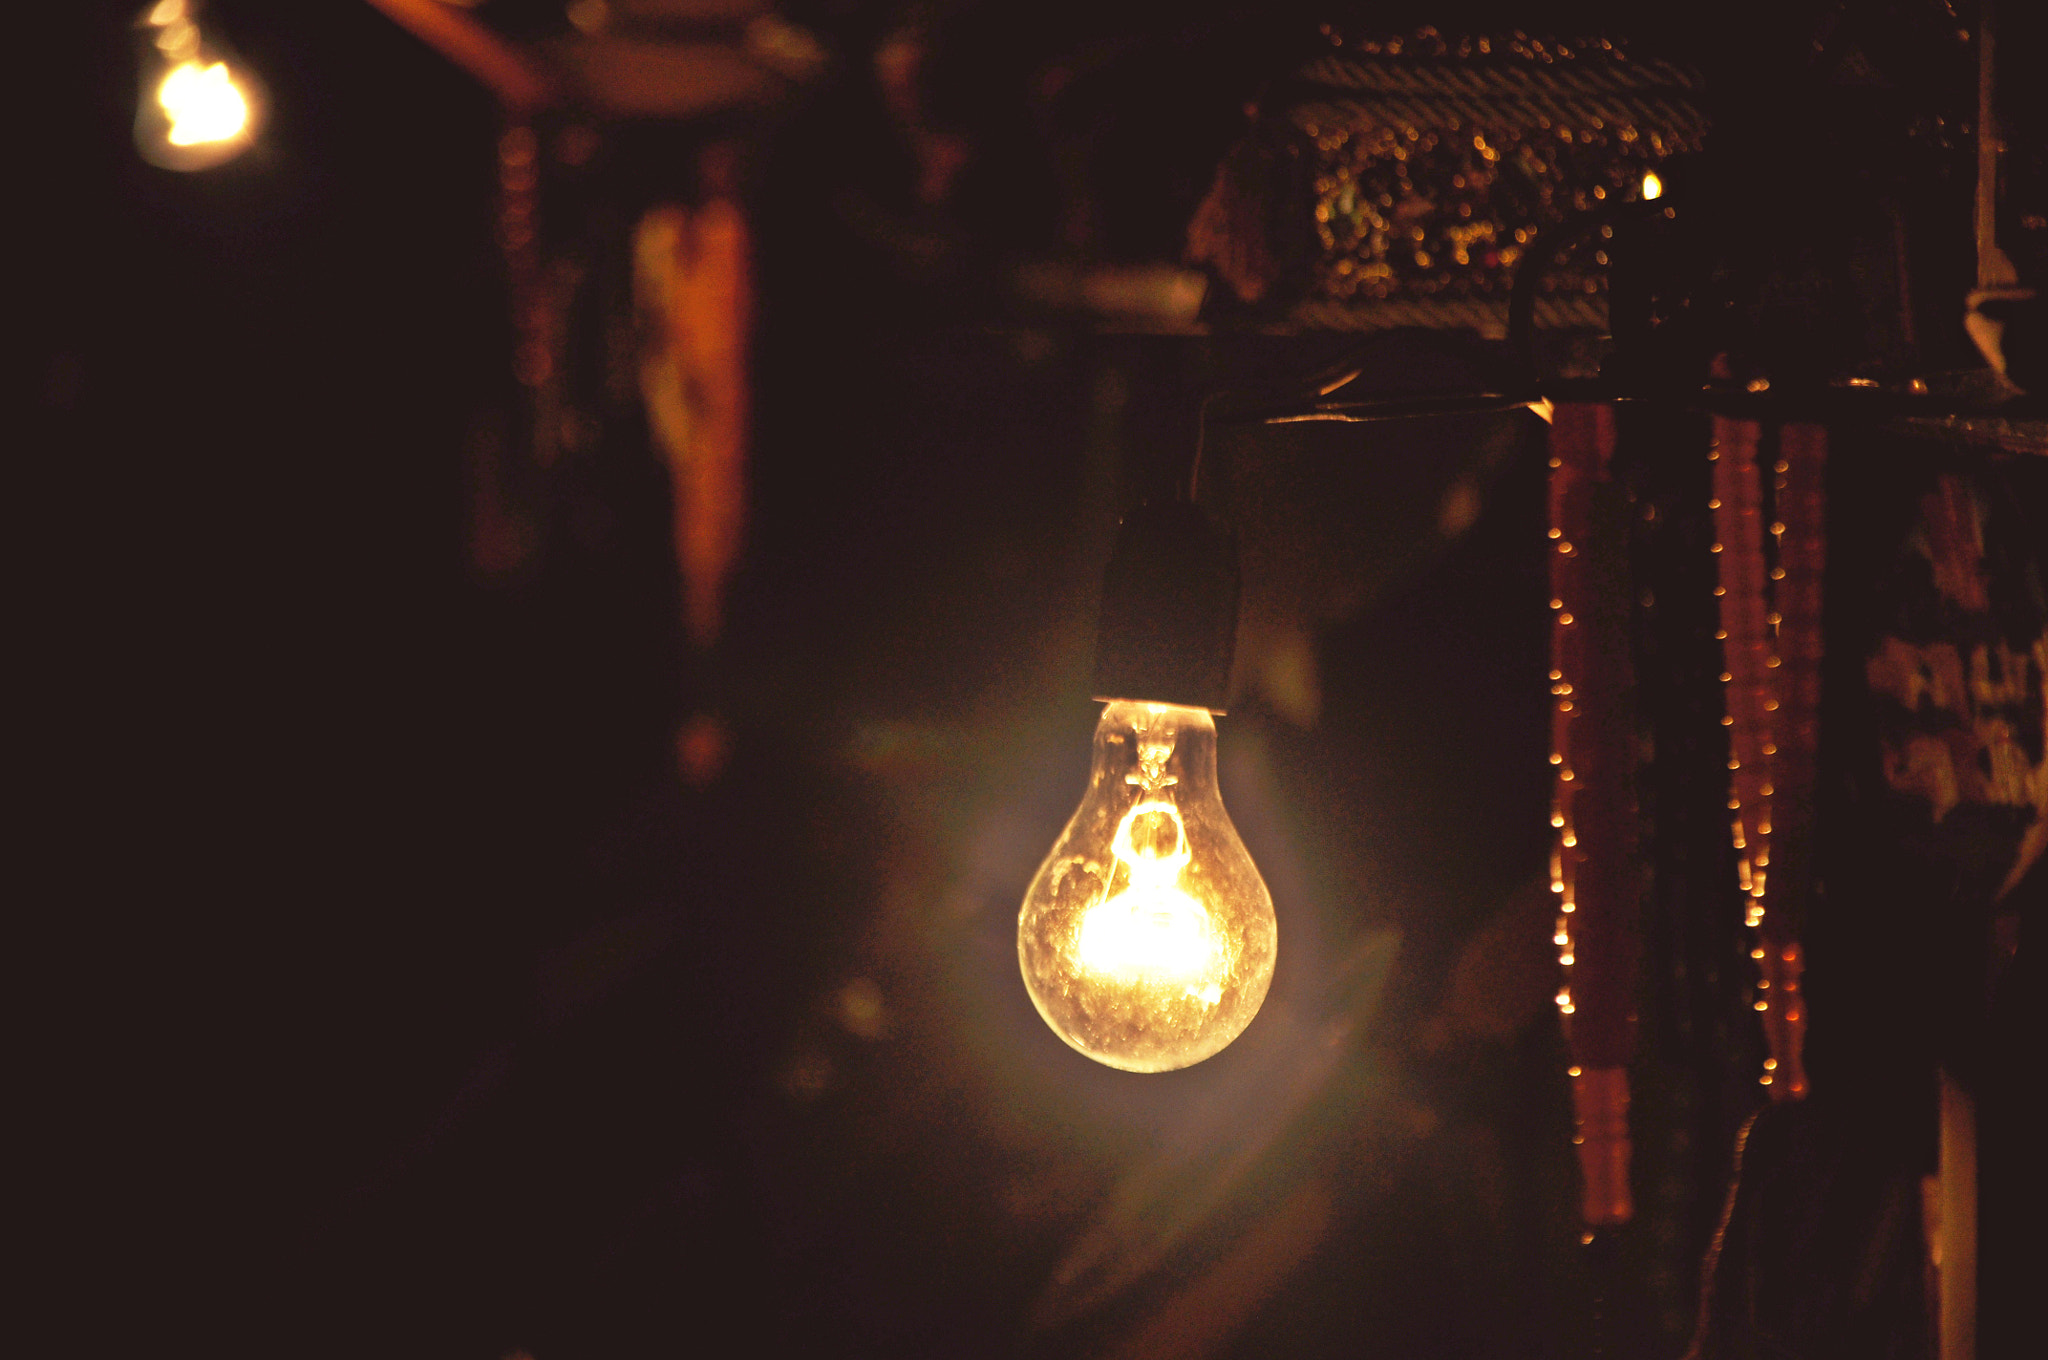 Photograph Lamp in the Dark by Rasul Guliyev on 500px